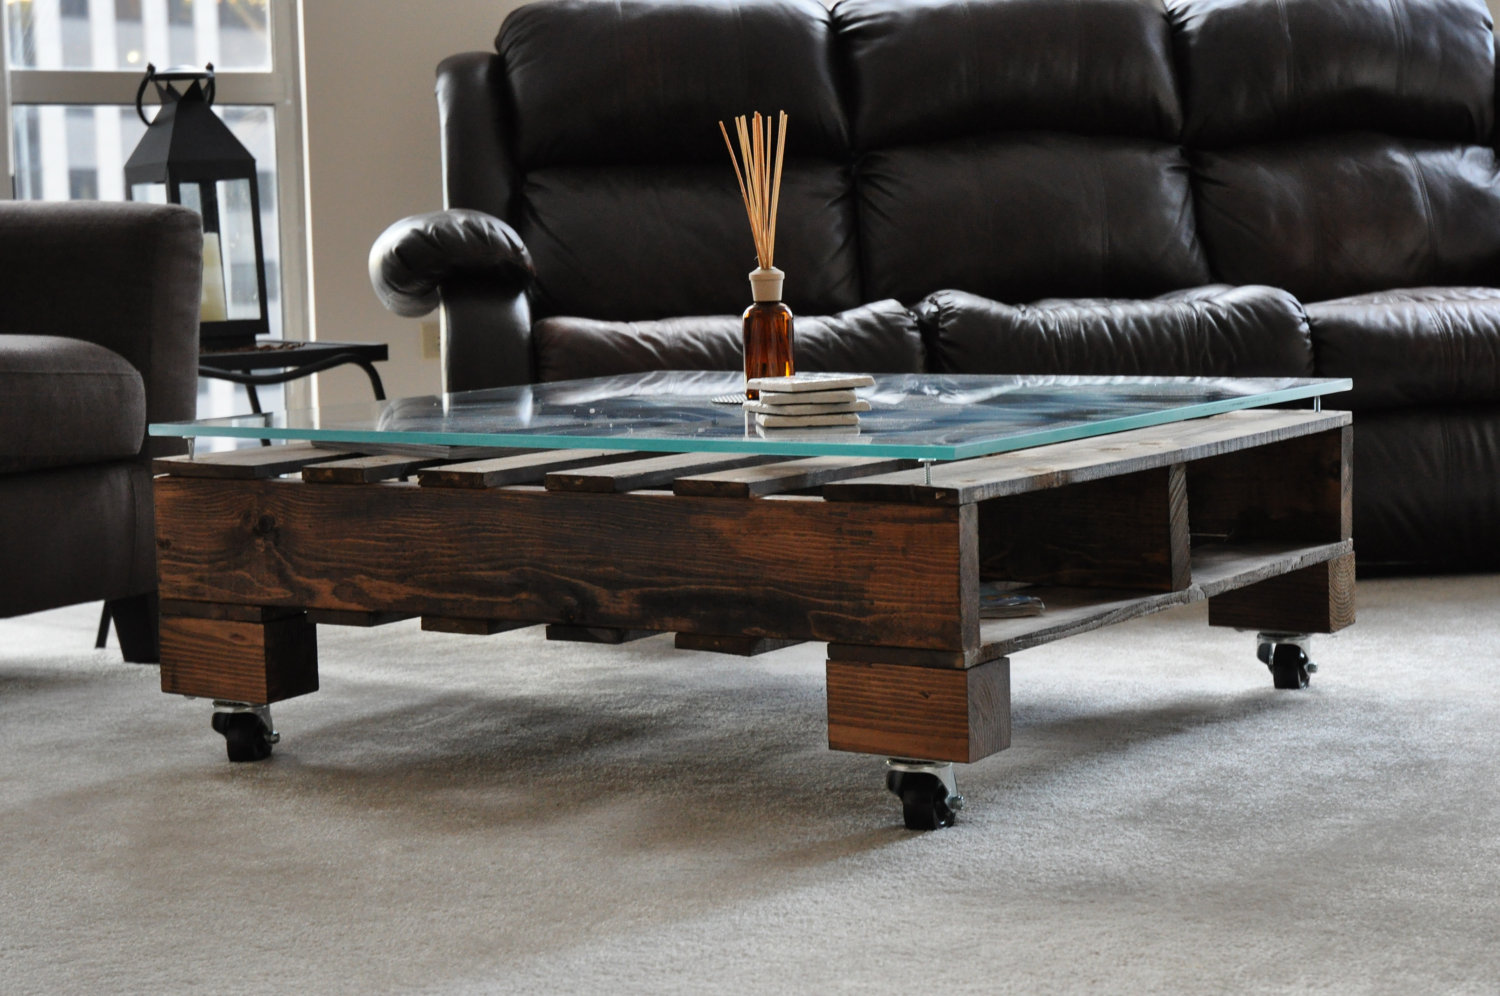 Pallet coffee table glass top - Glass Pallet Coffee Table Jpg